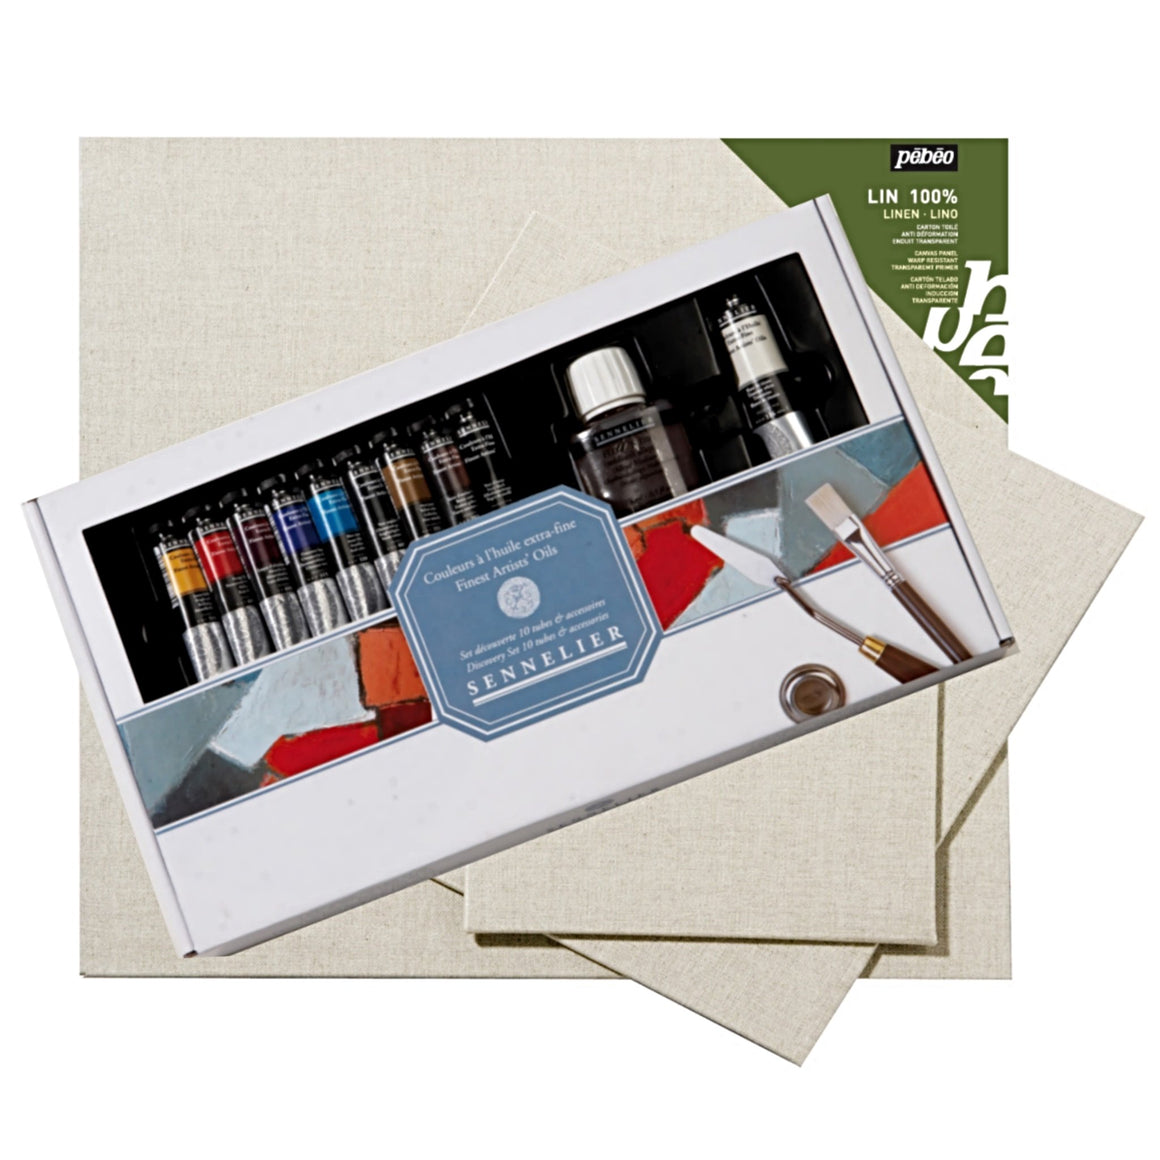 "1 x Sennelier Oil Discovery Set 10 x 21ml tubes, turpentine, charcoal, brushes, palette knife and metal dipper. 1x Pébéo Linen Canvas Panels/Board 8"" x 10"" 1x Pébéo Linen Canvas Panels/Board 10"" x 12"" 1x Pébéo Linen Canvas Panels/Board 12"" x 12"""